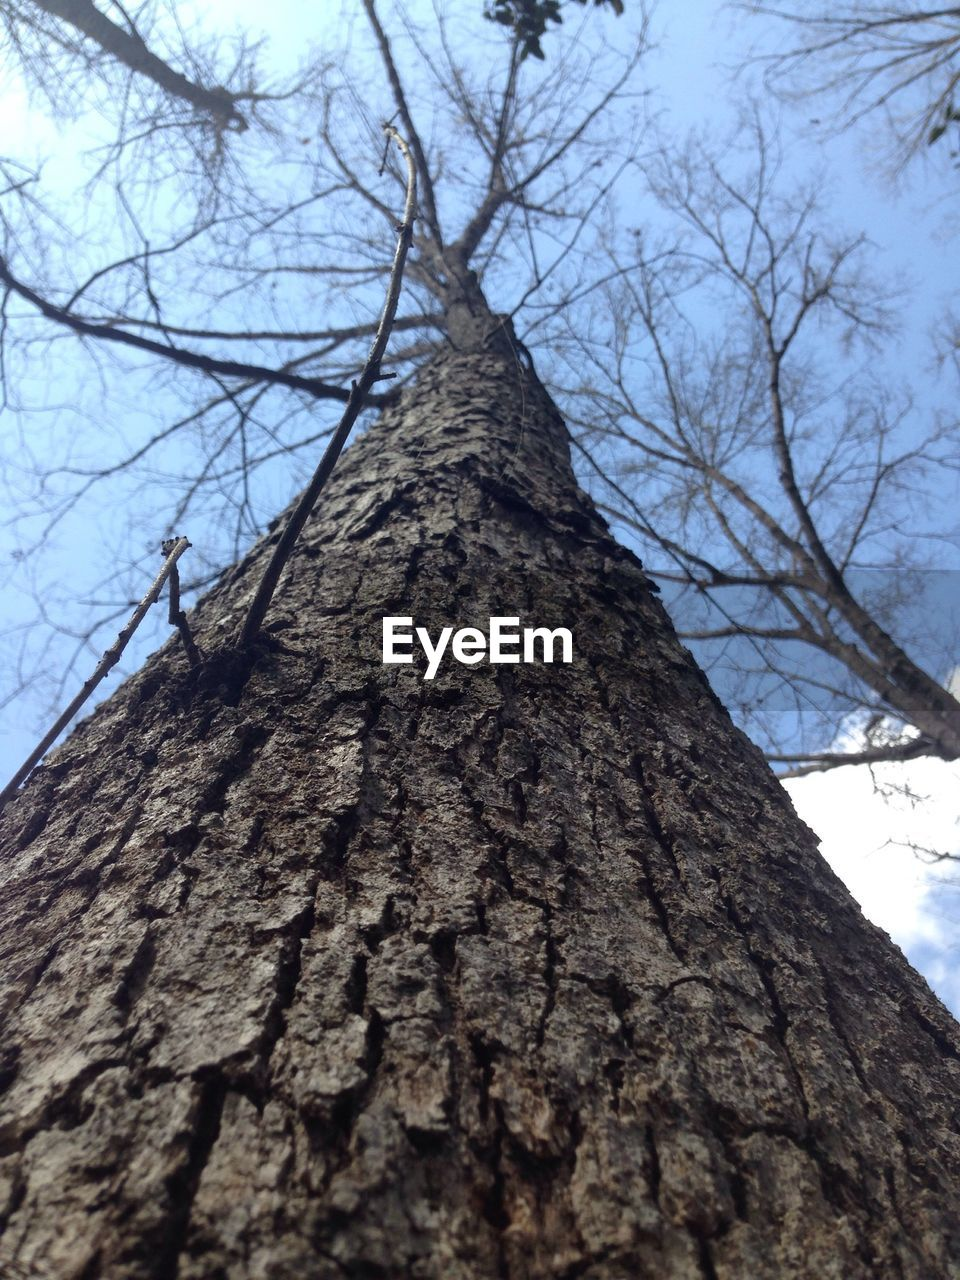 tree, tree trunk, low angle view, branch, bare tree, day, textured, nature, no people, bark, growth, sky, outdoors, beauty in nature, close-up, dead tree